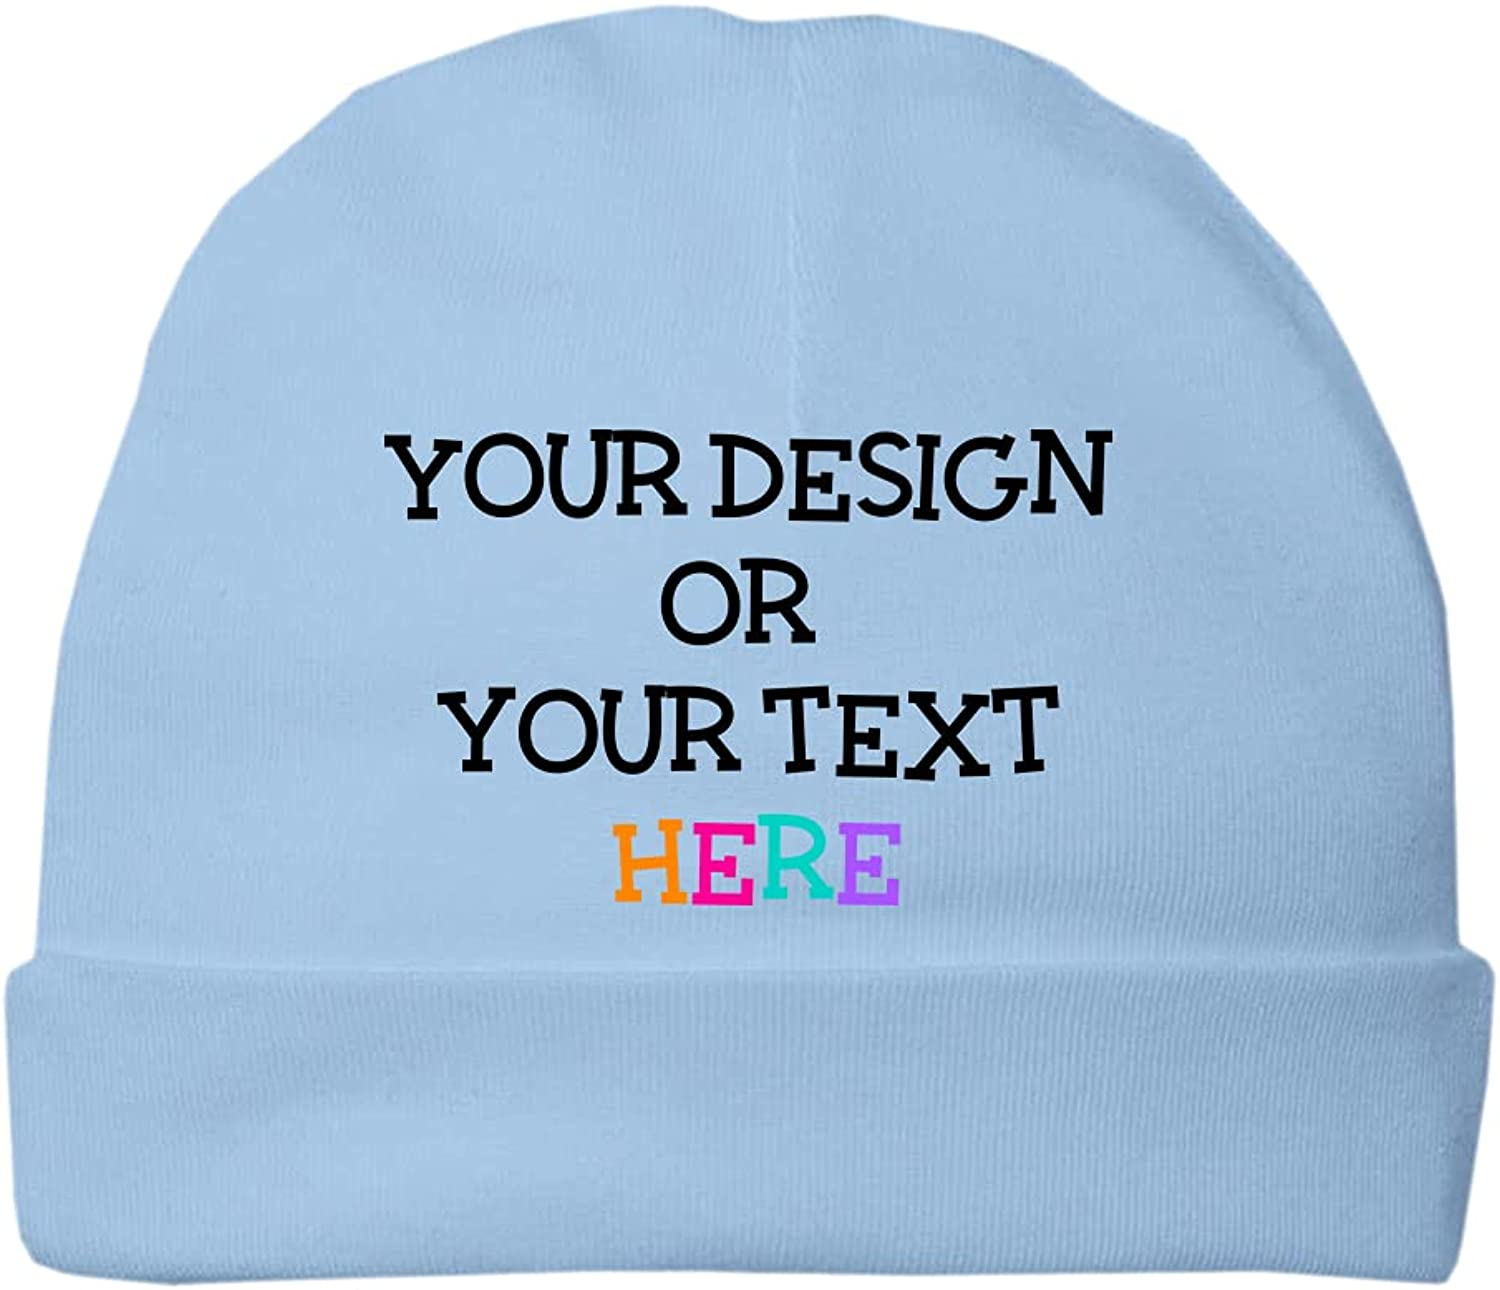 Awkward Styles Personalized Baby Beanie Cap for Boys Girls Newborn Hat 100% Cotton Customized Baby Name Front Print Only